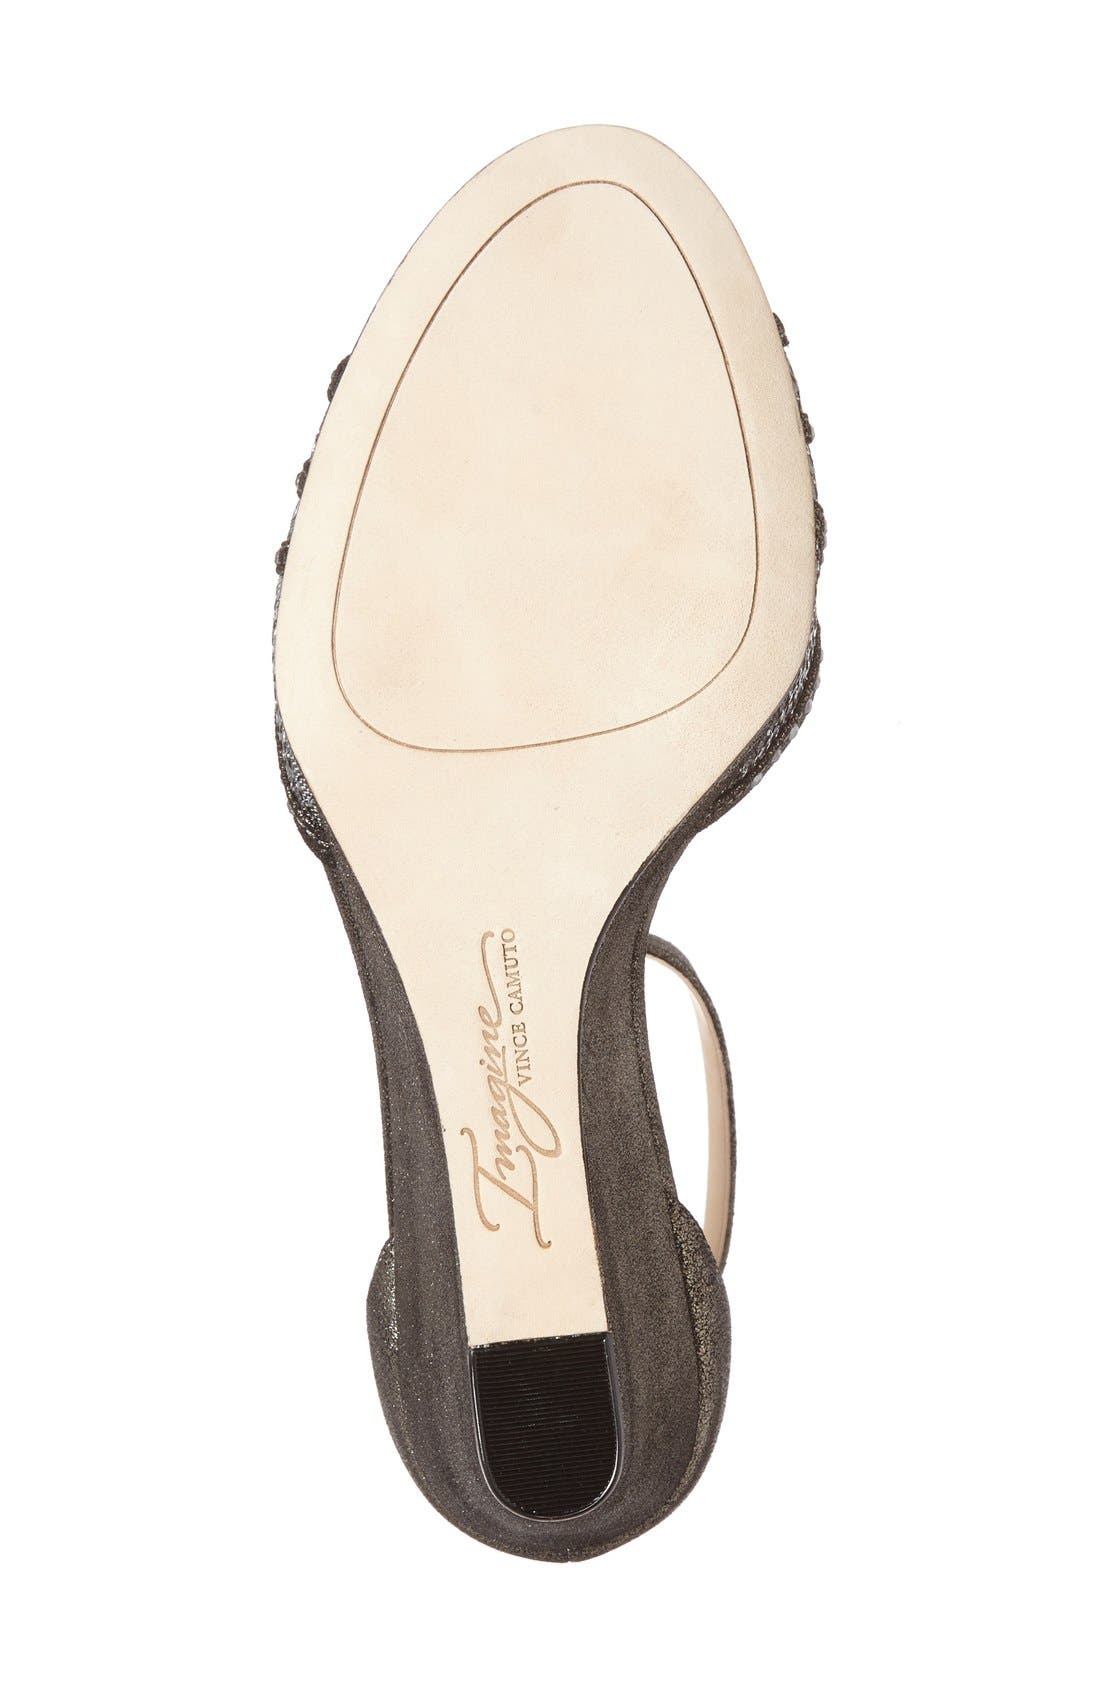 'Joan' Studded Wedge Sandal,                             Alternate thumbnail 4, color,                             Anthracite Suede